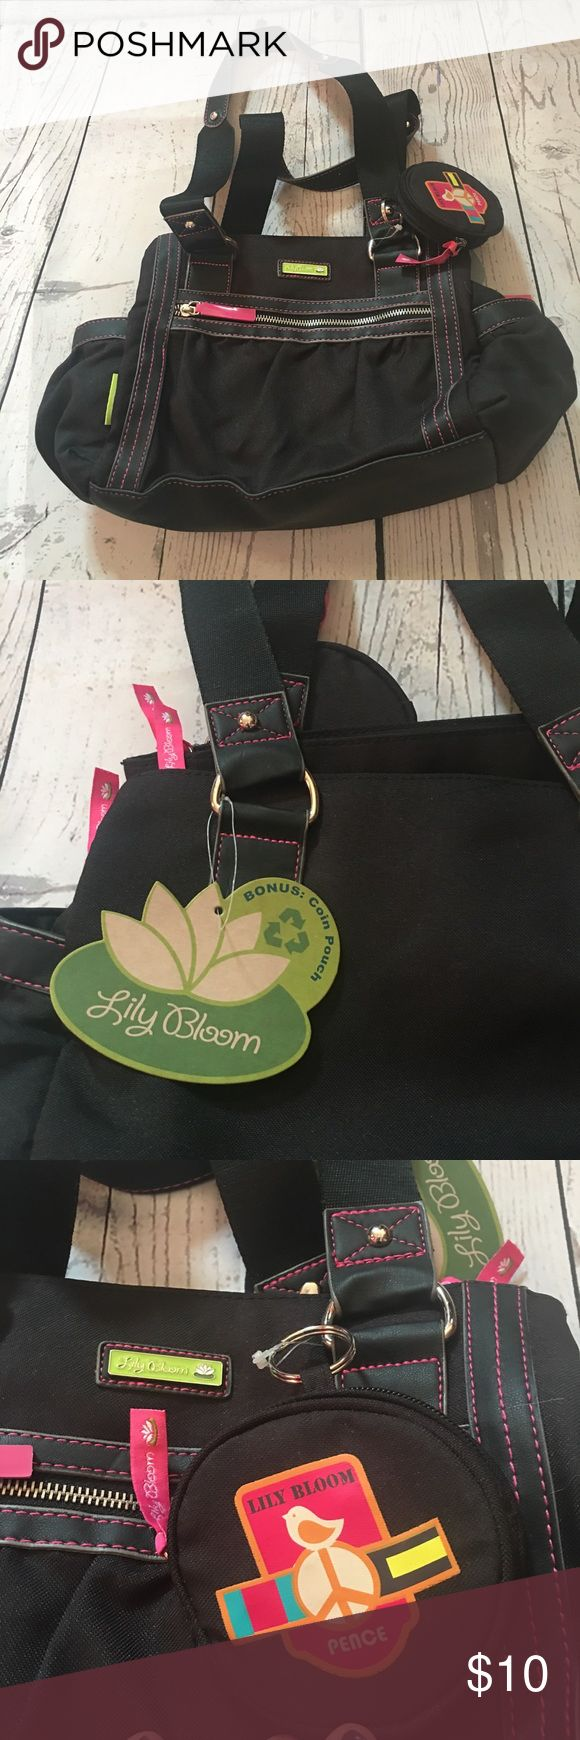 NWT Lily Bloom bag NWT black Lily Bloom bag Lily Bloom Bags